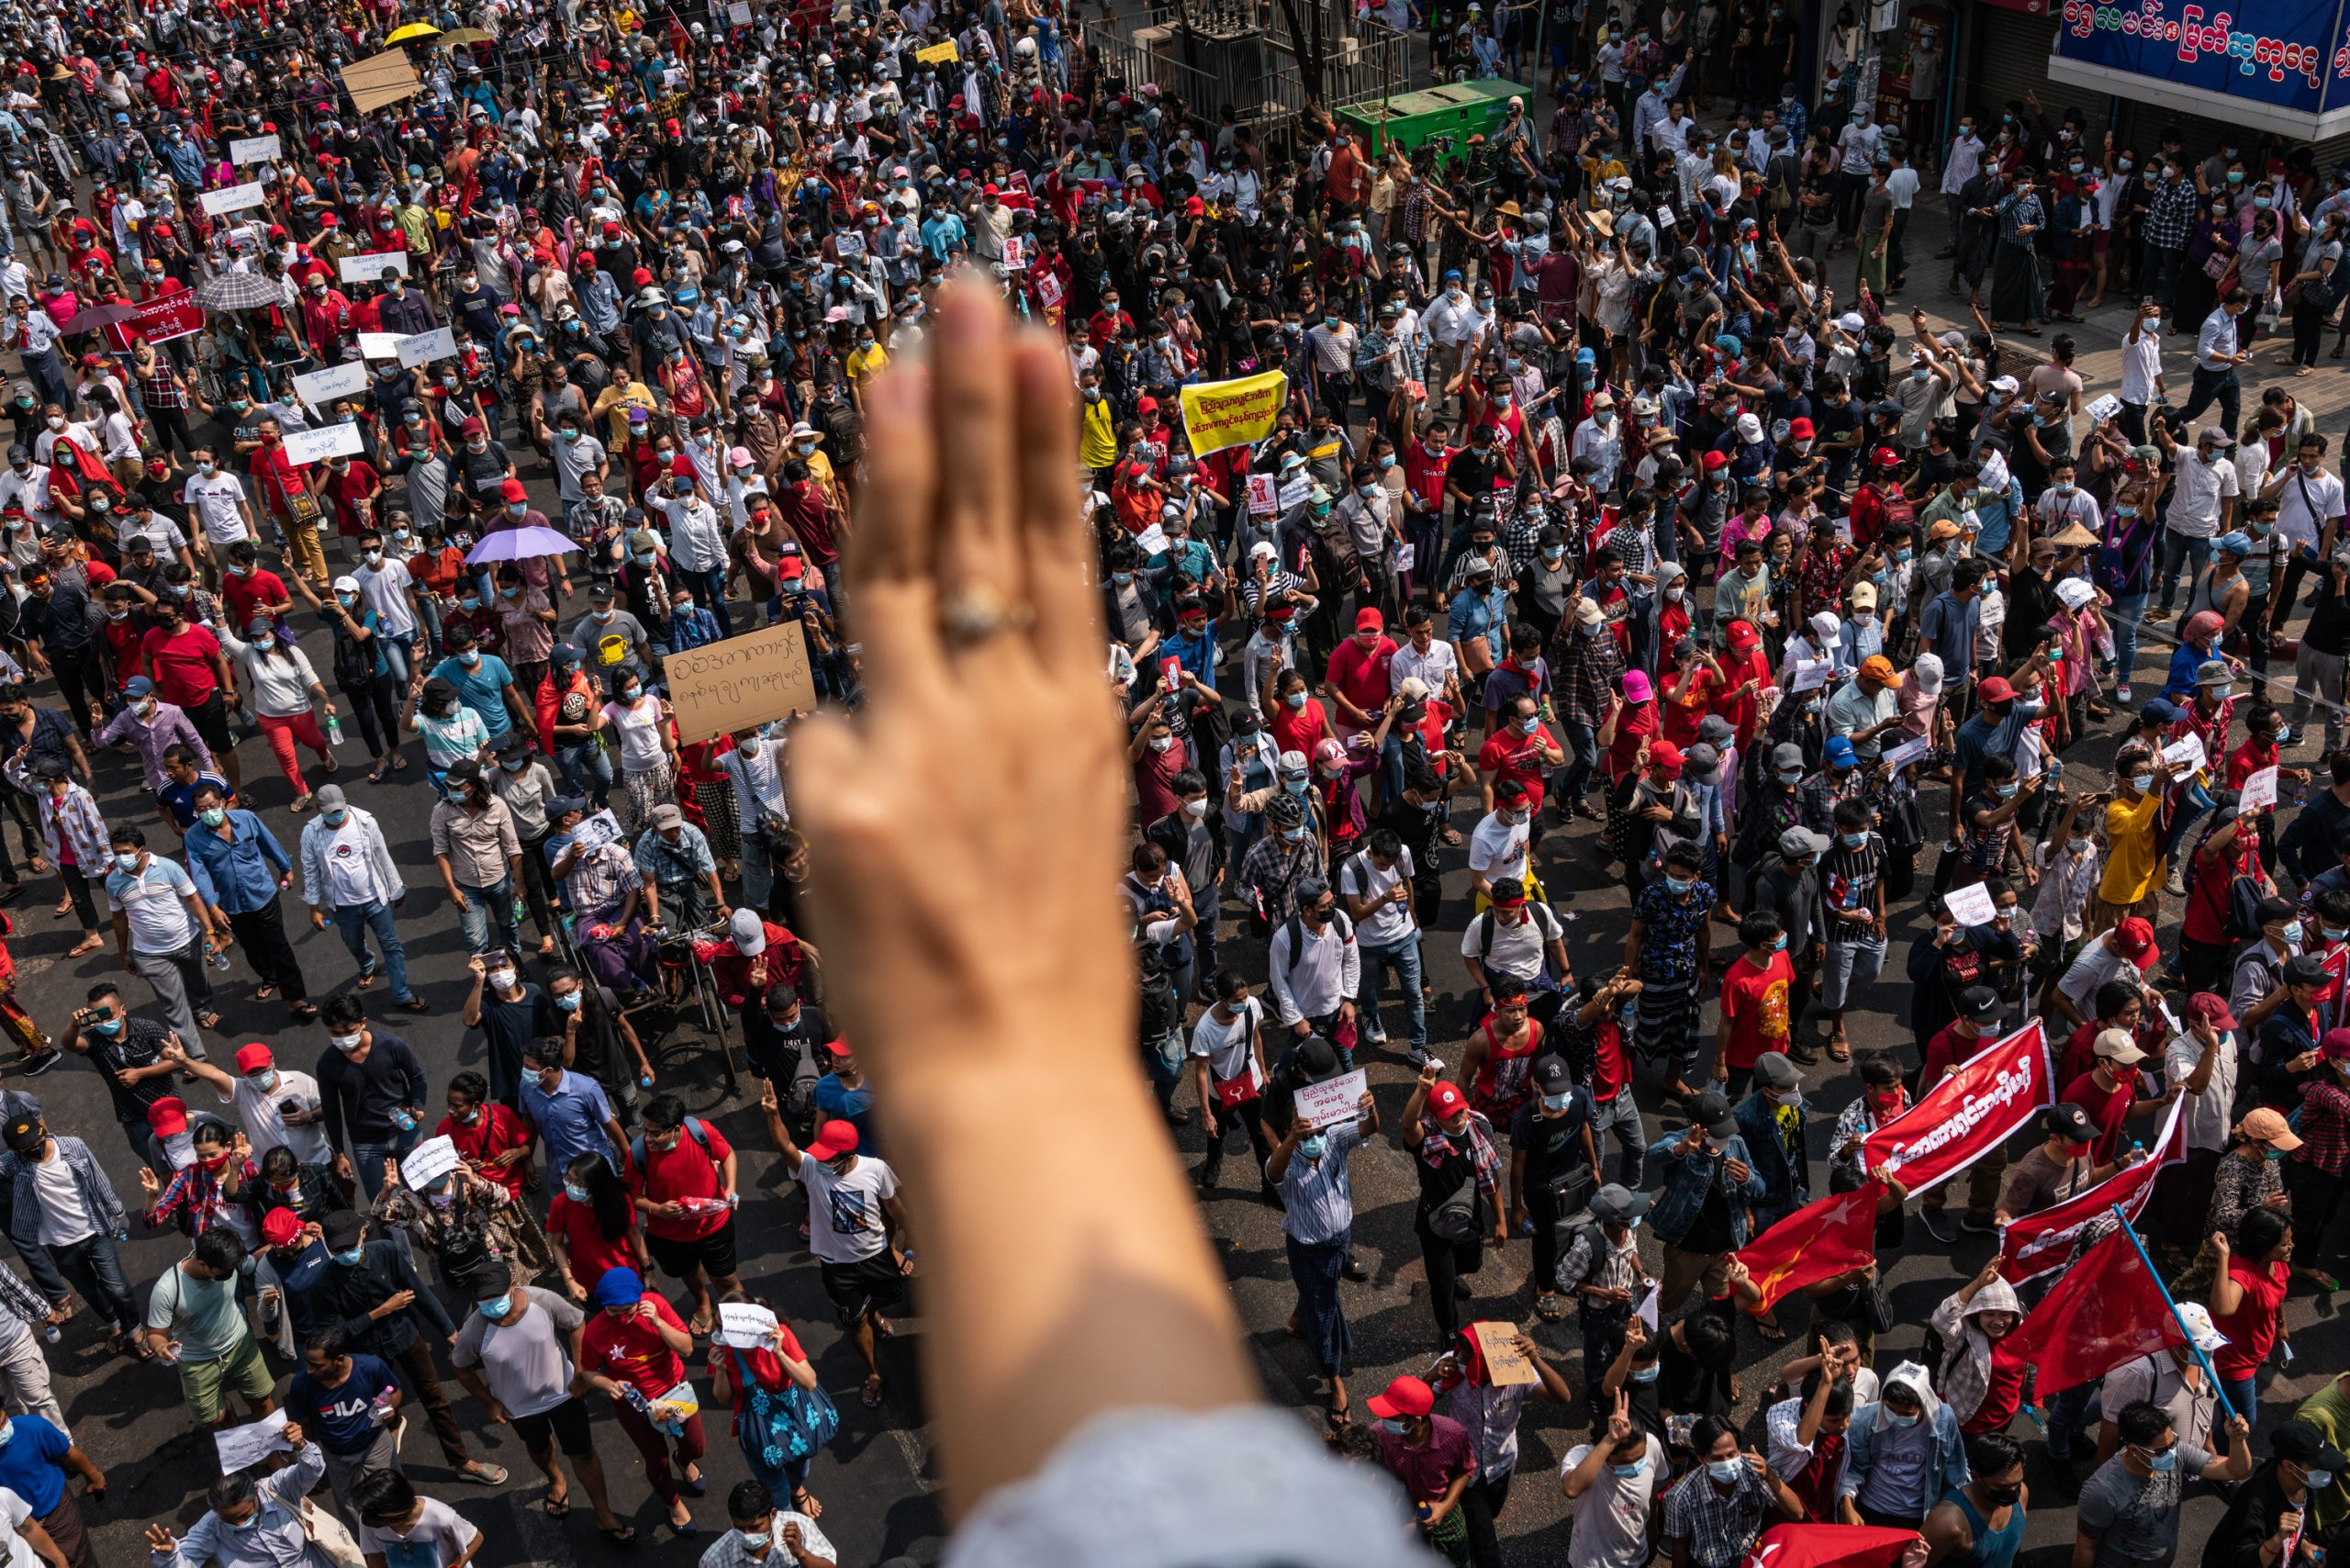 A man gives the three-finger salute to thousands of demonstrators in downtown Yangon on February 7. (Frontier)